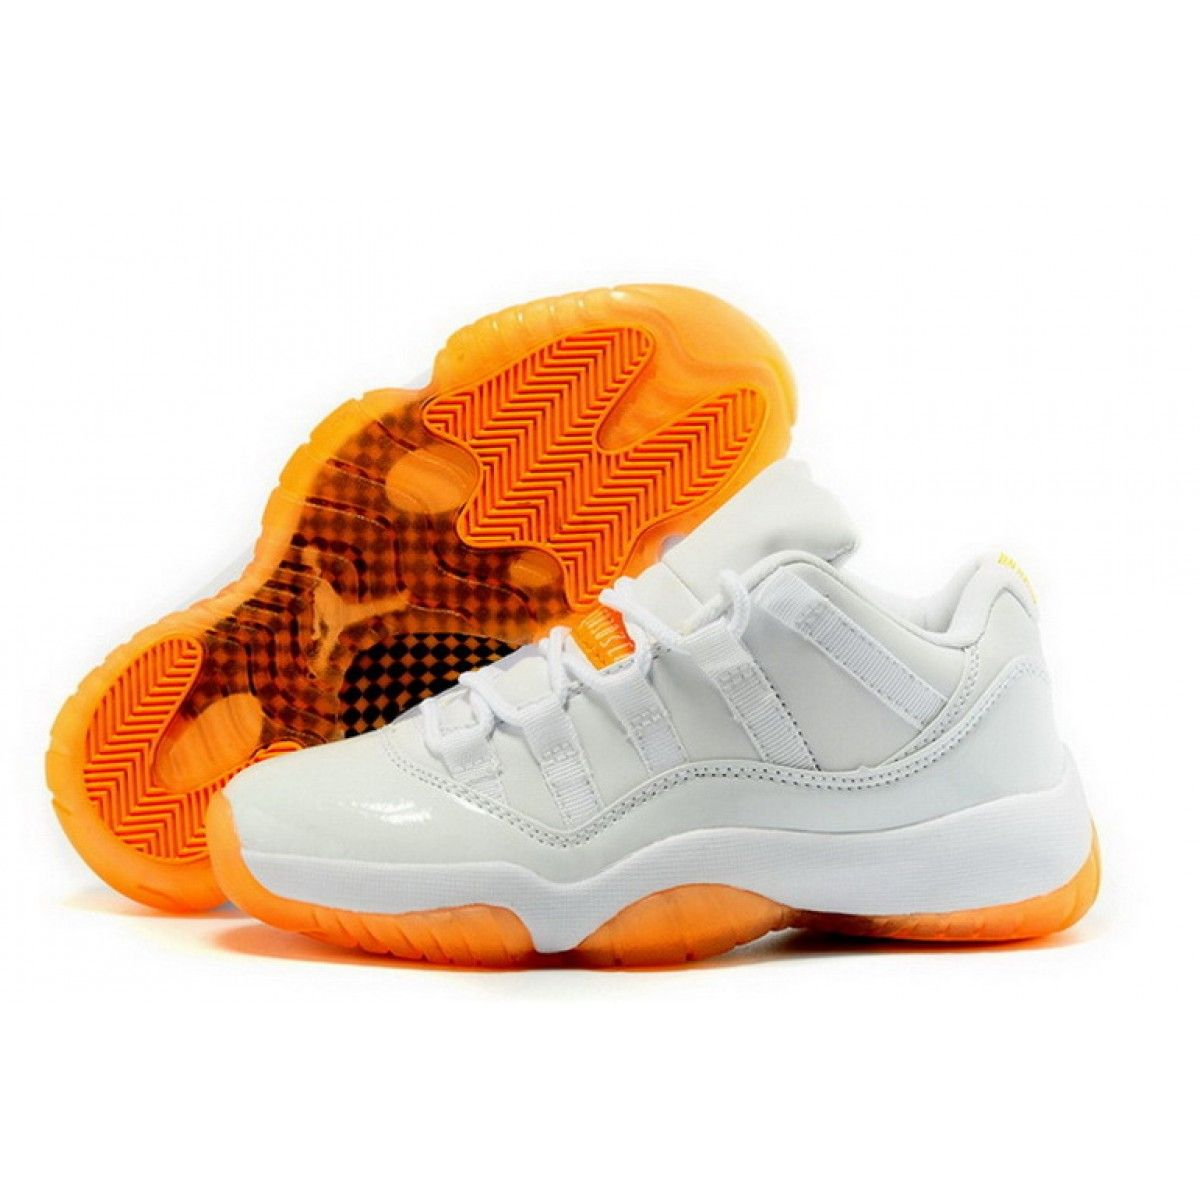 0f7838c93e81b5 Womens Air Jordan XI 11 Retro 2015 Low GS Citrus White Orange Basketball  Shoes